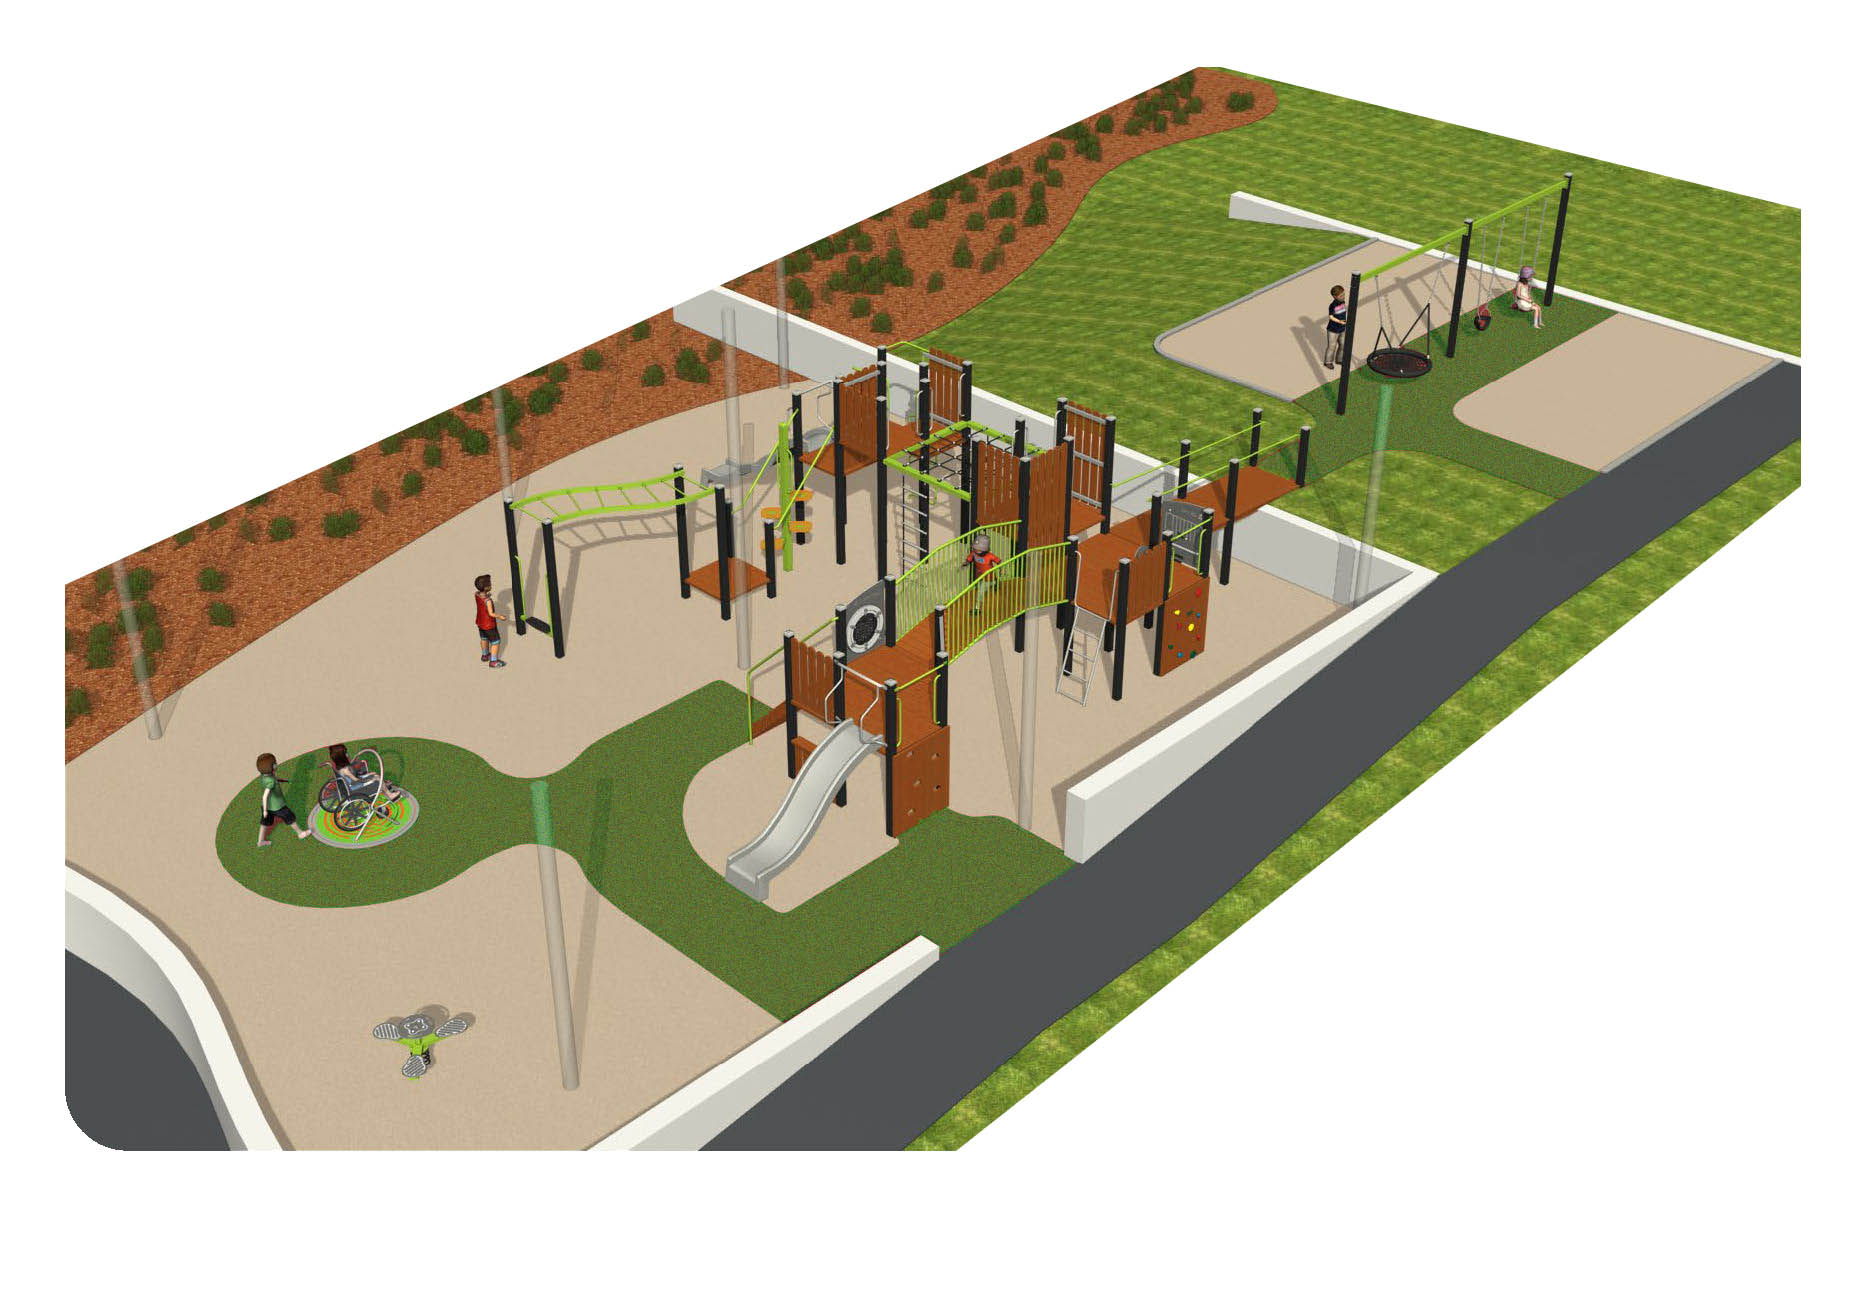 Detailed design of new playground, including rocker, swings and spinners and